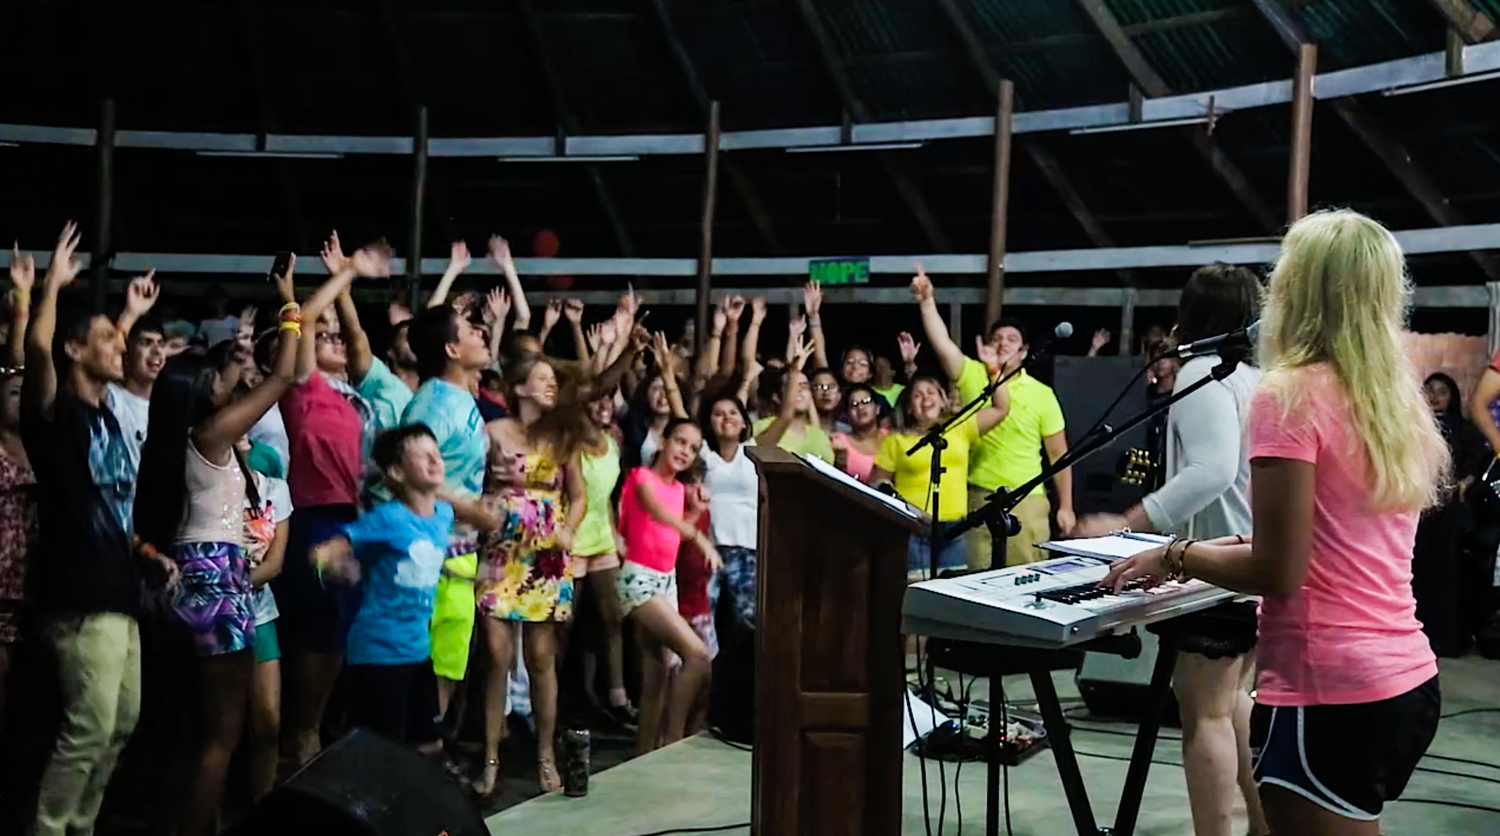 Students worship energetically during a nighttime chapel session